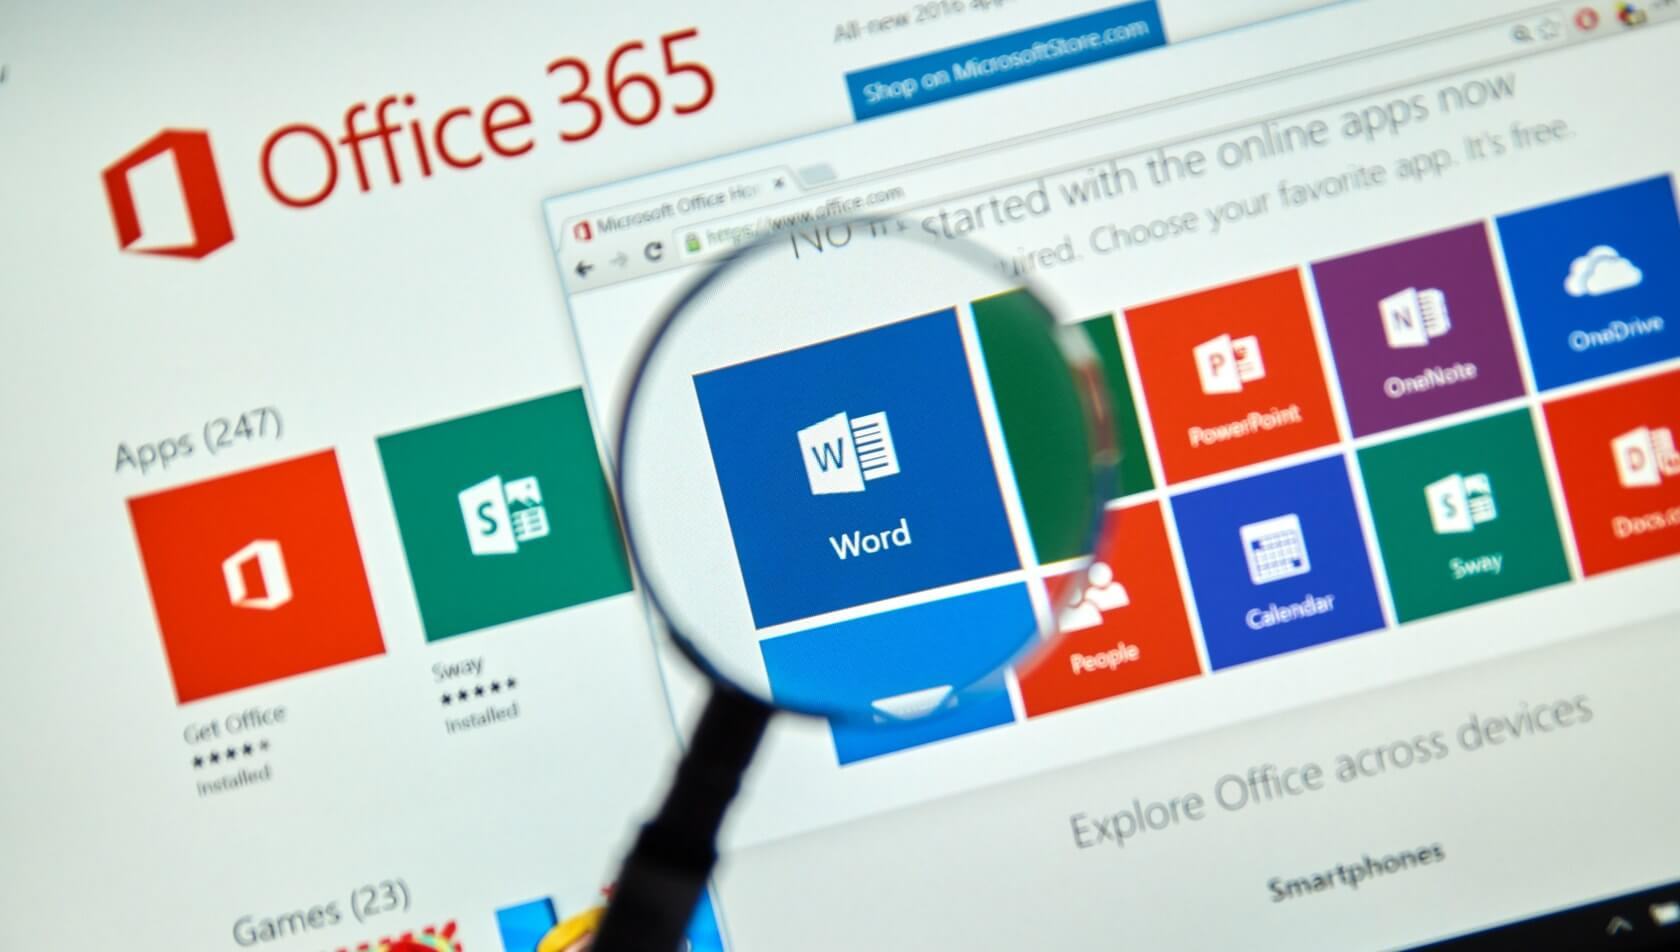 German state bans the use of Office 365 tools in its schools due to privacy concerns